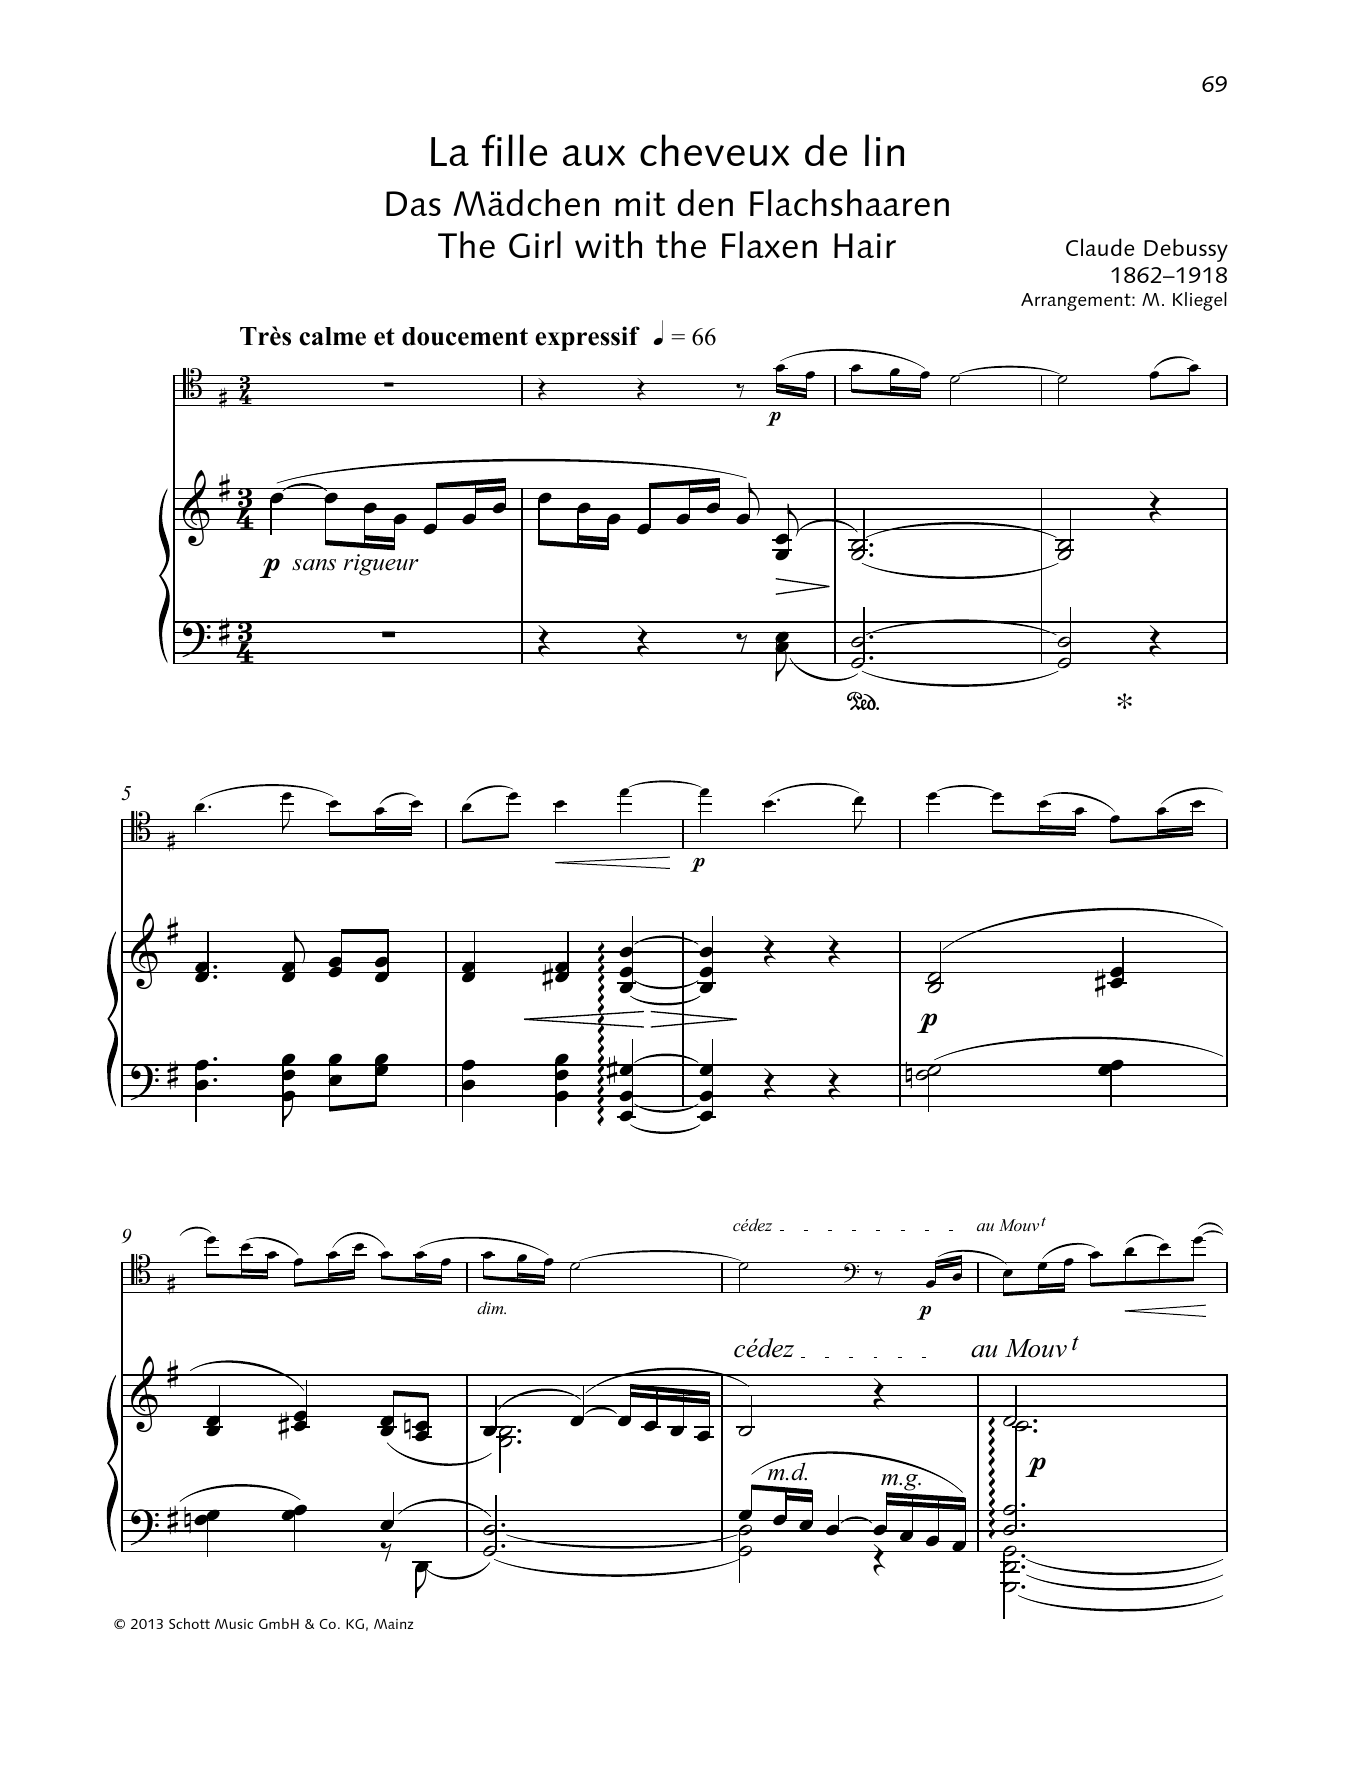 The Girl with the Flaxen Hair Sheet Music